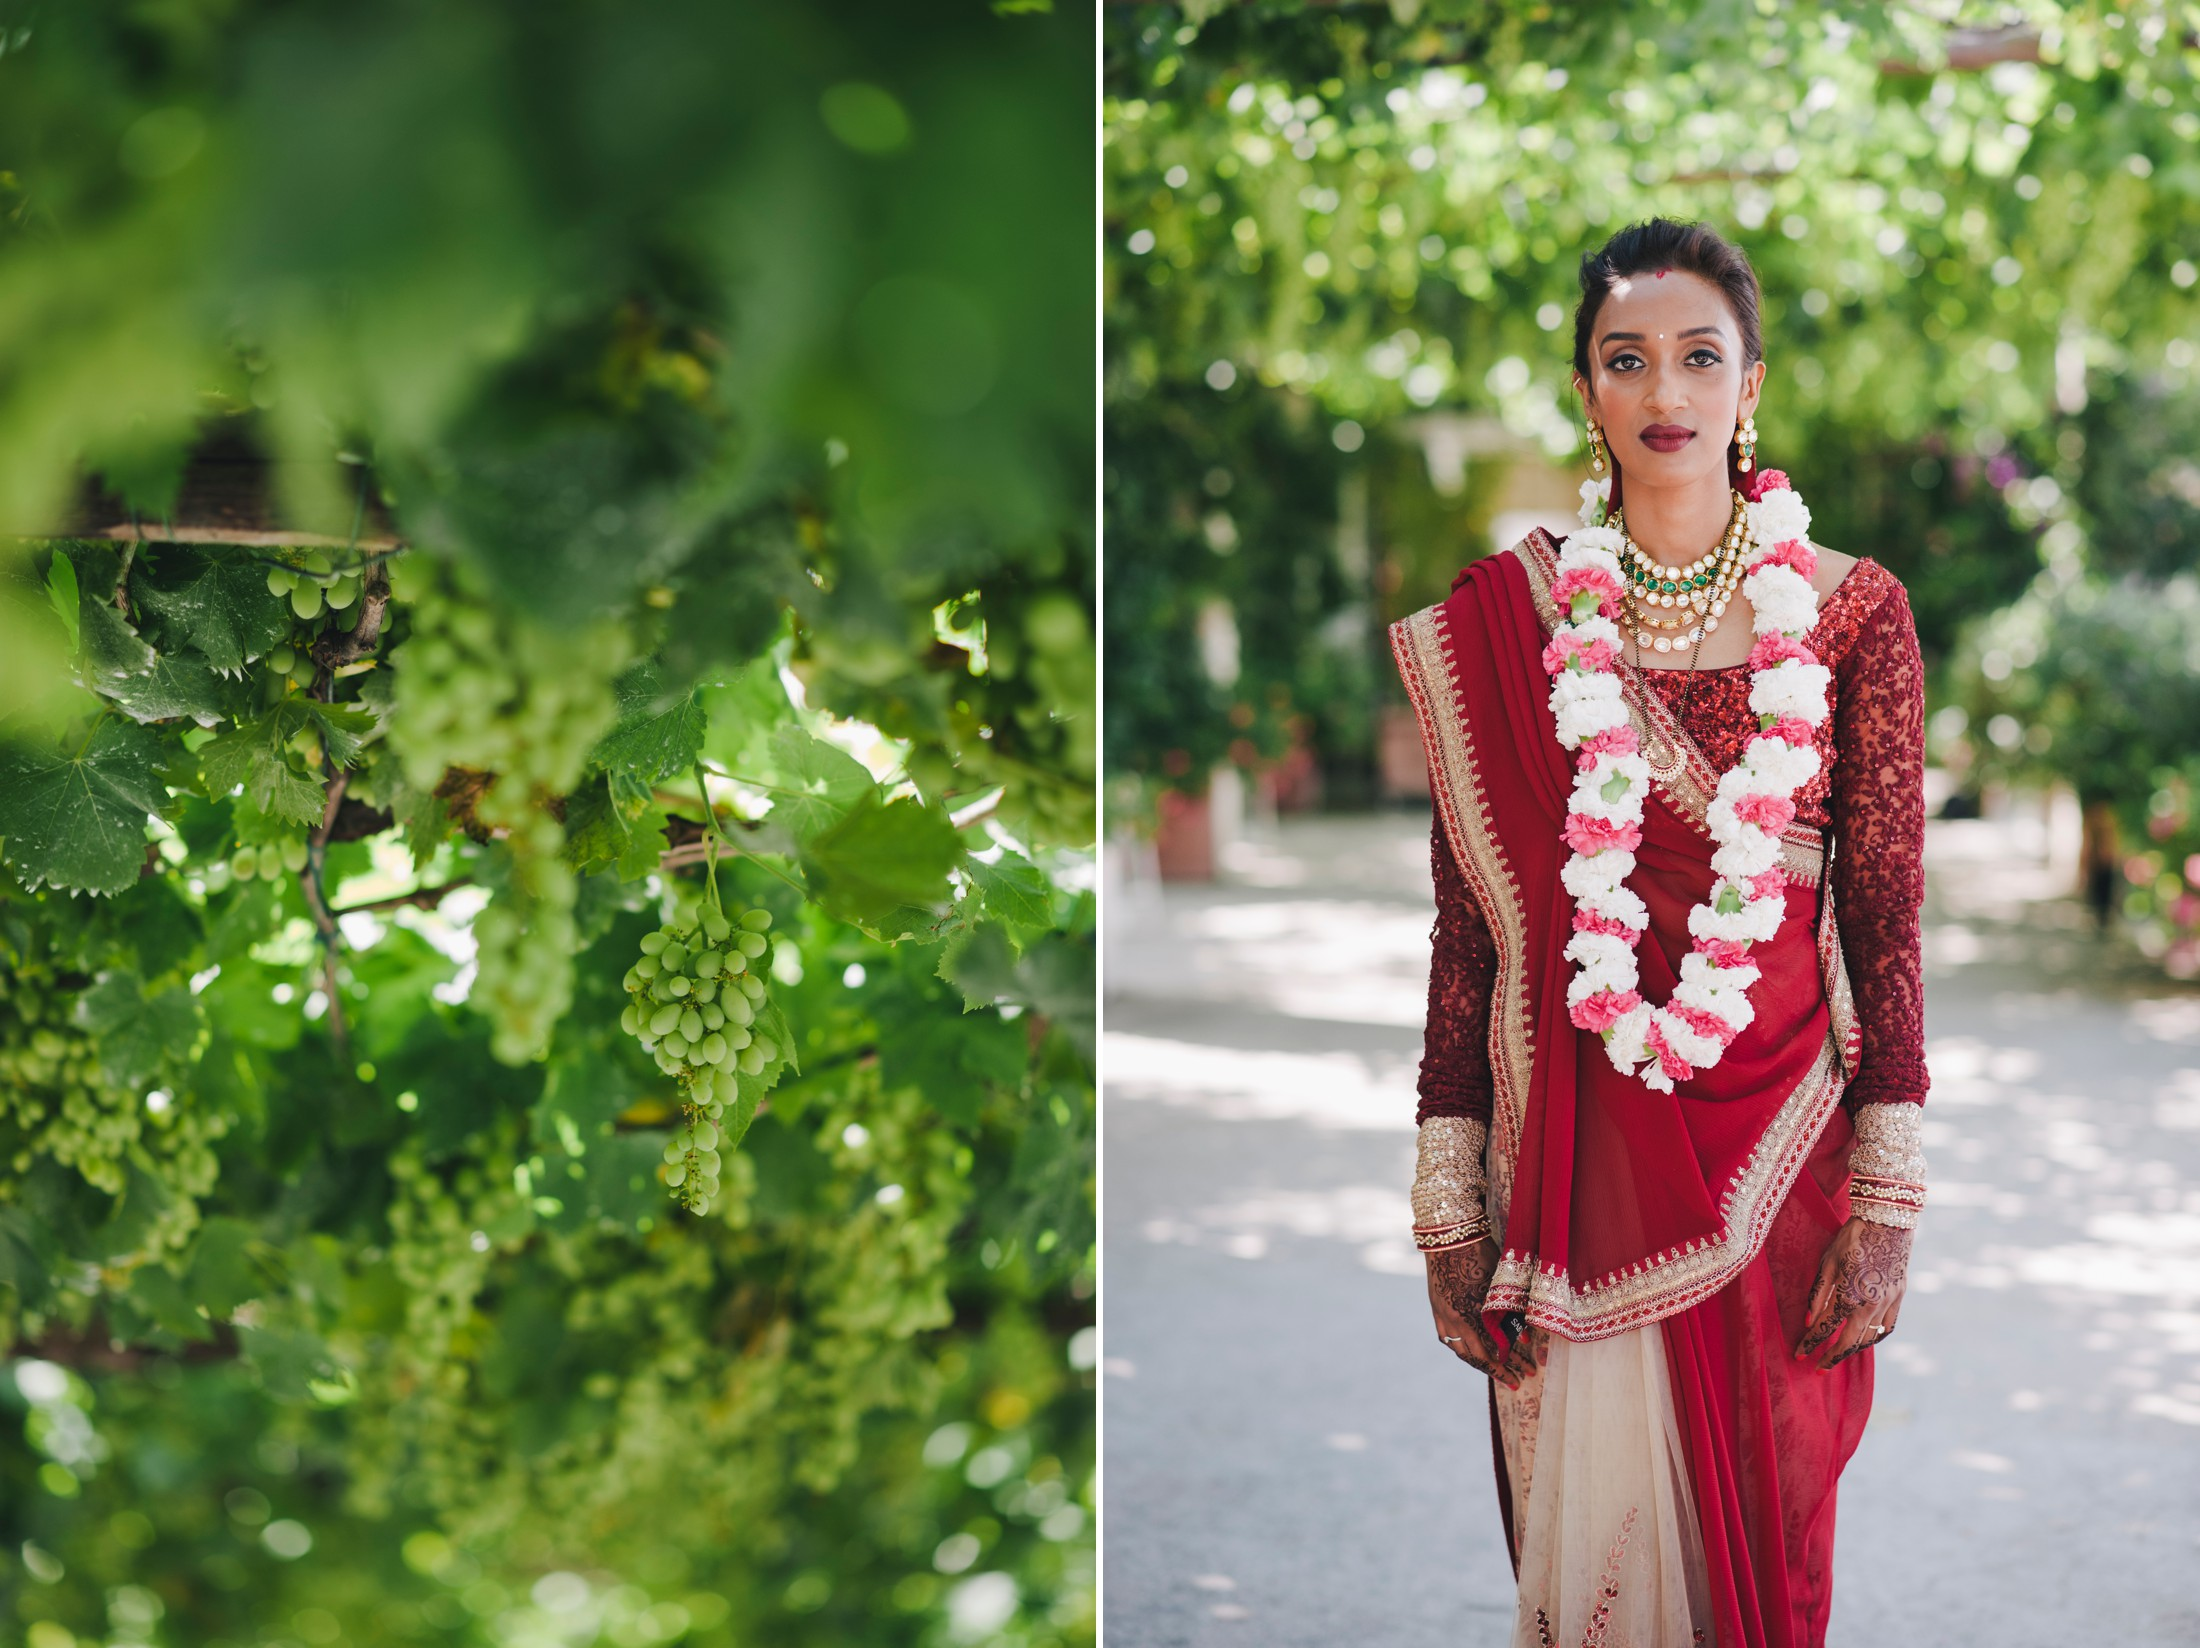 collage green grape trees and the bride with her red indian dress